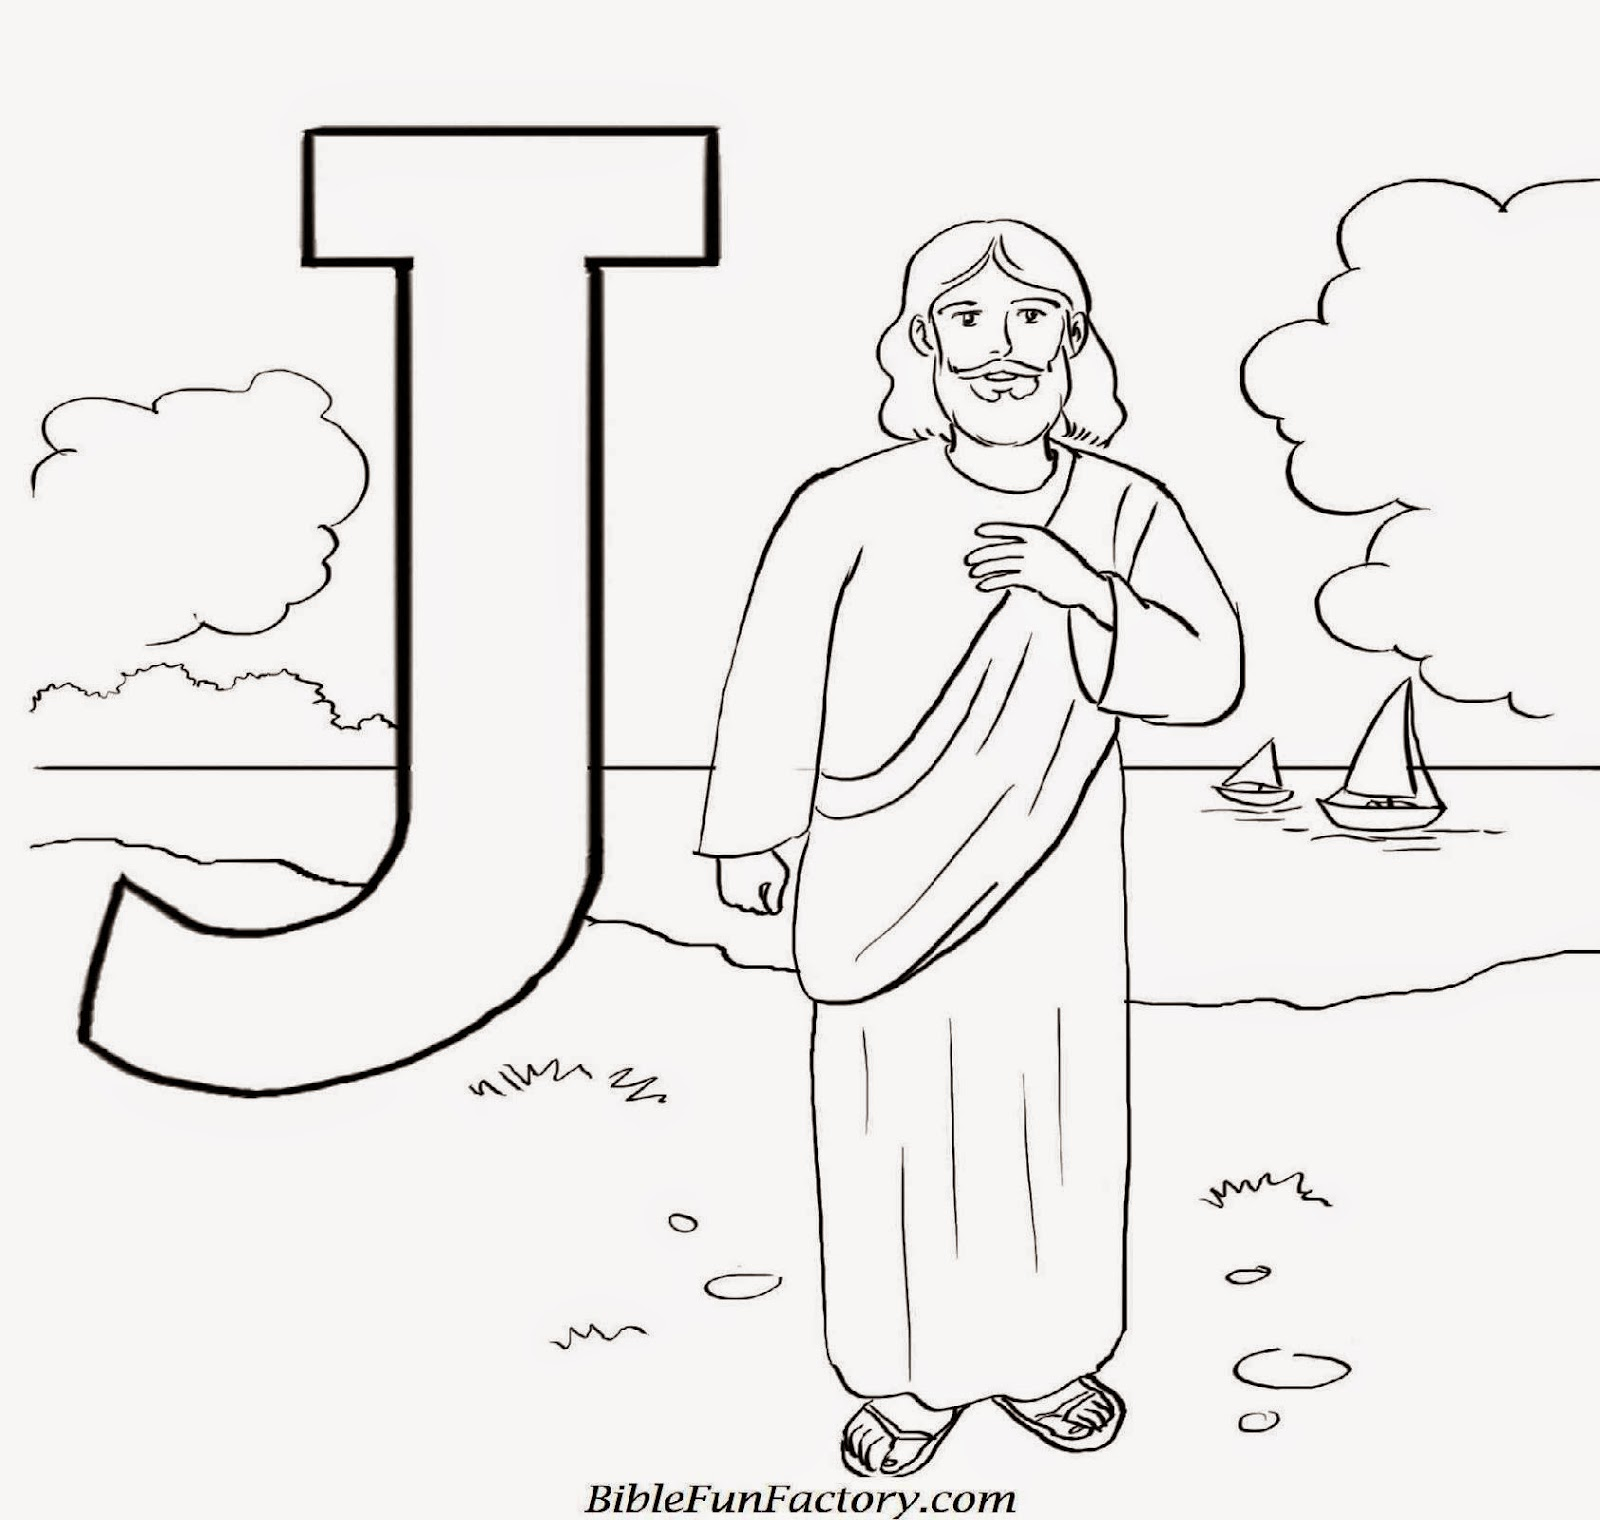 Jforjesus Jesus Coloring Pages Printable